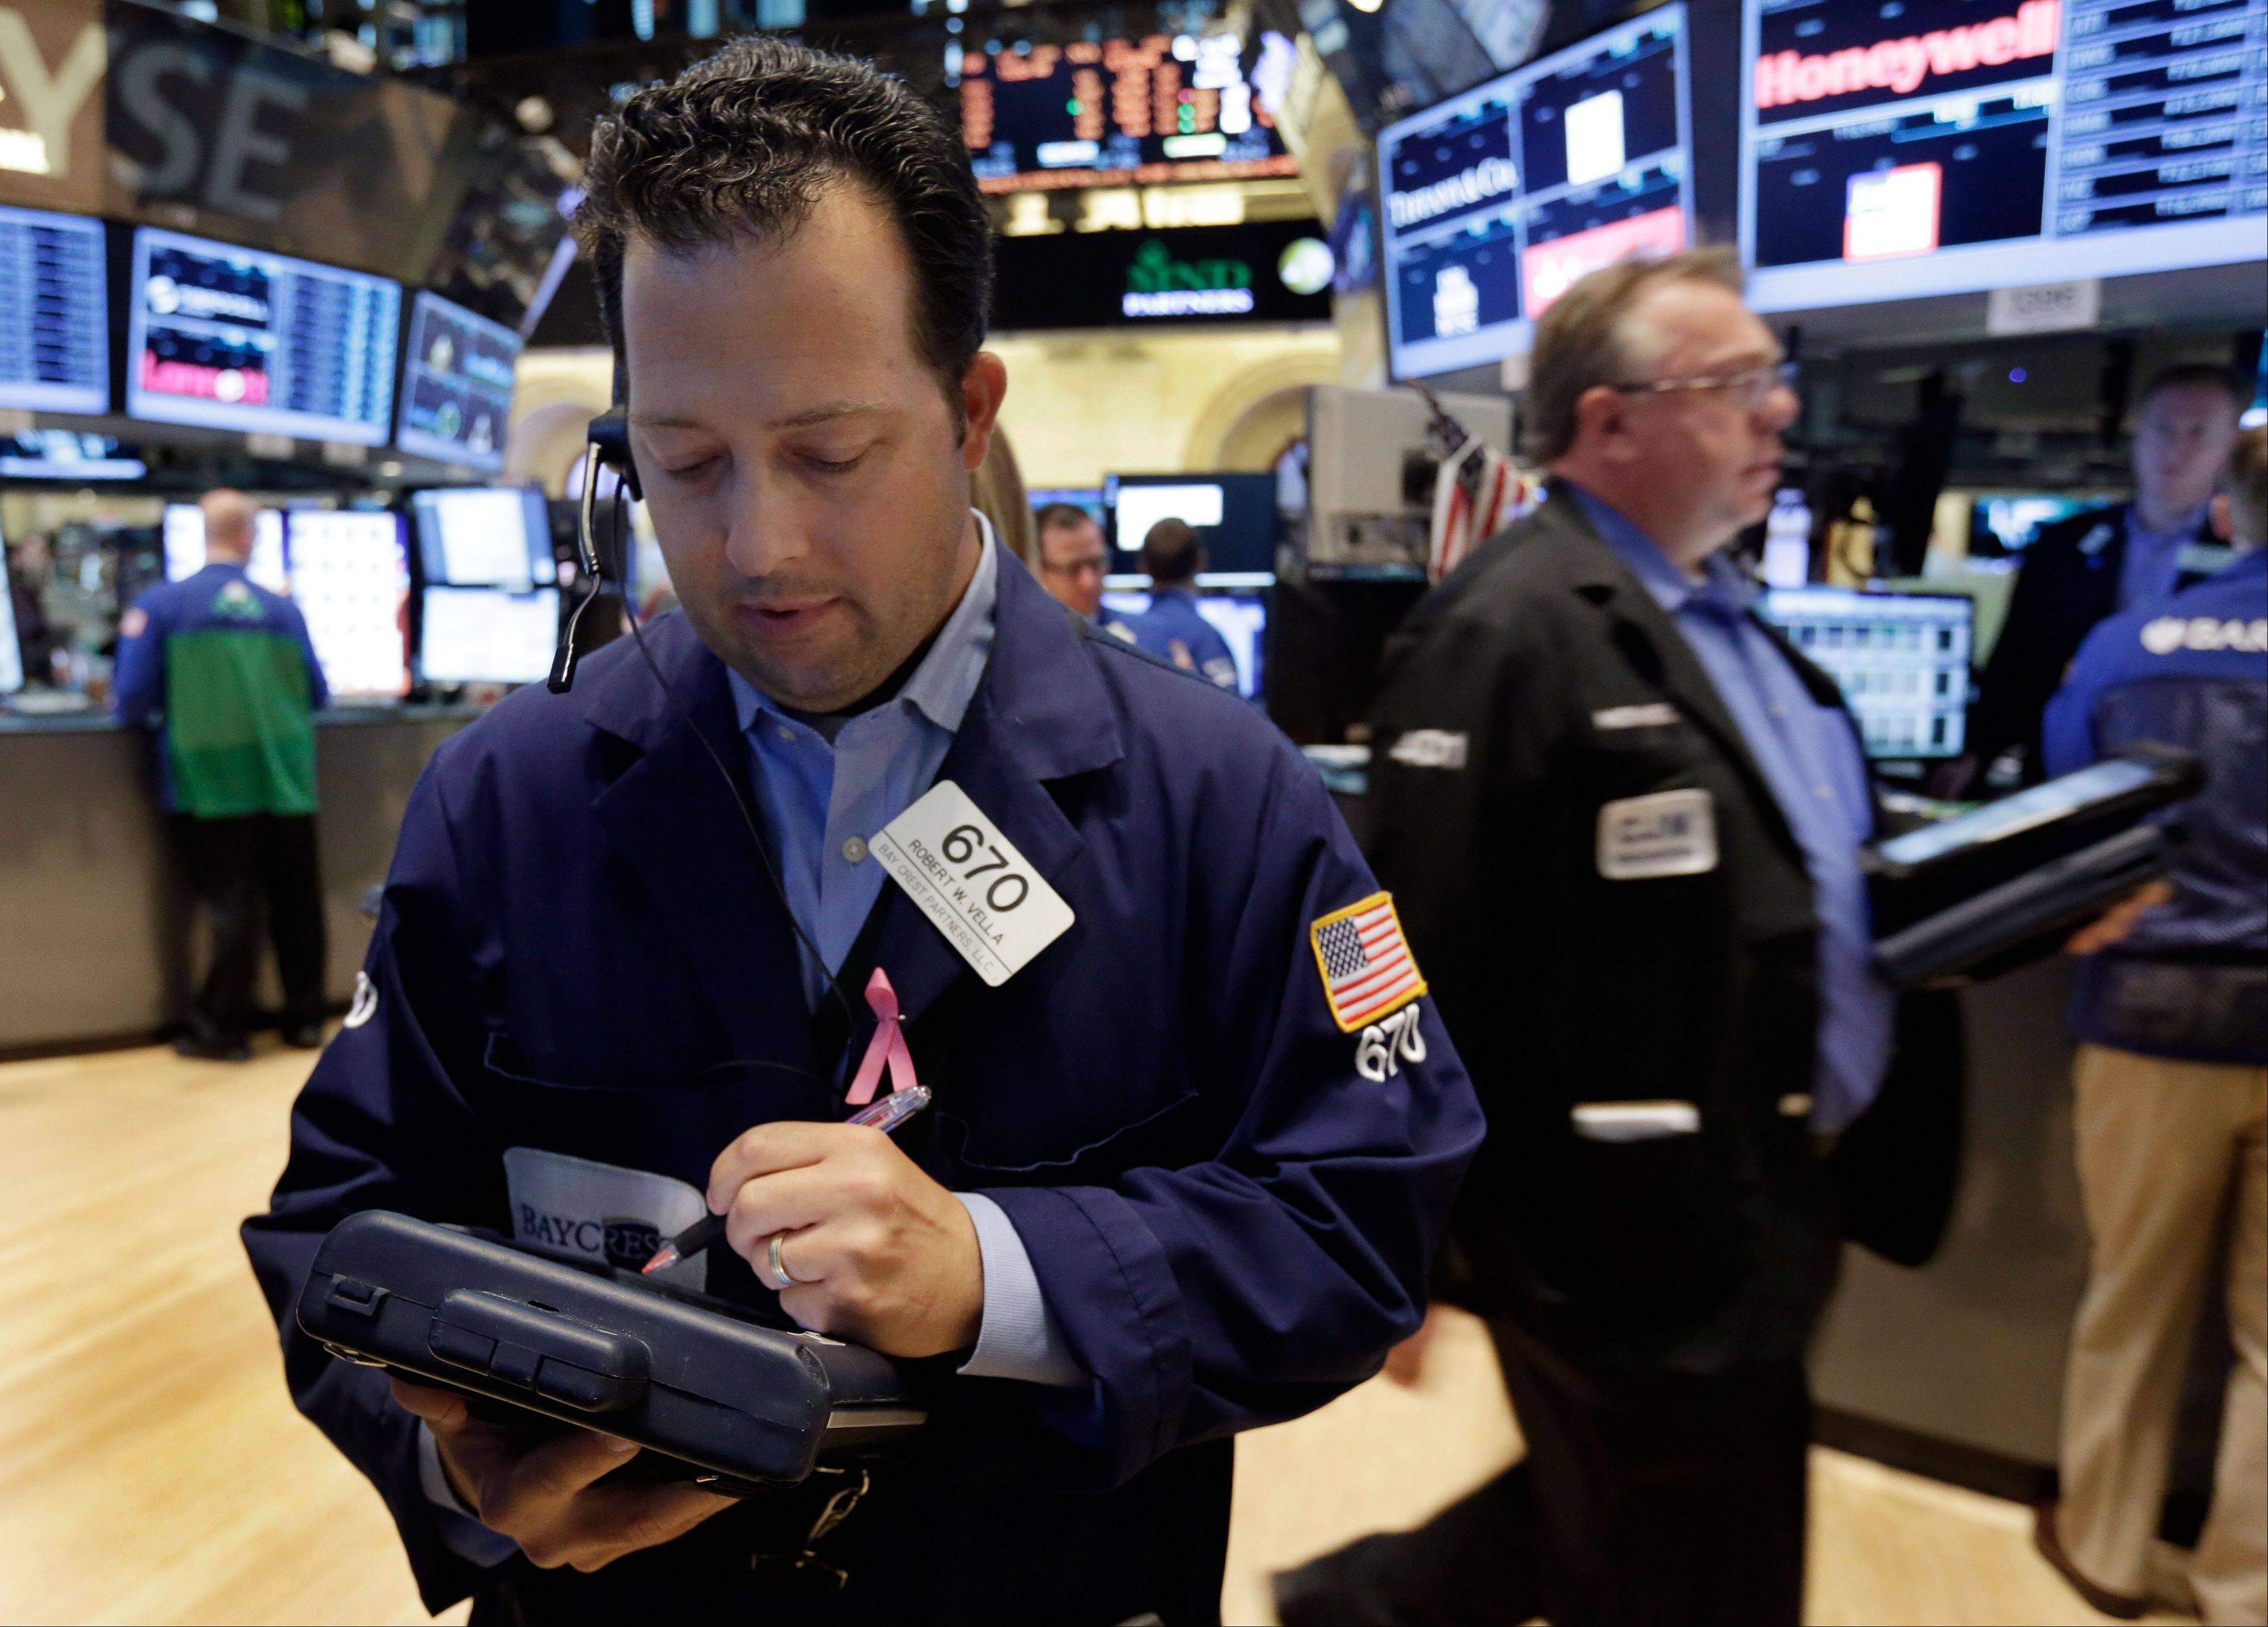 U.S. stocks fell, erasing earlier gains, as the Standard & Poor's 500 Index failed to hold above its average level from the past 50 days and investors awaited a monthly jobs report and the start of corporate earnings.